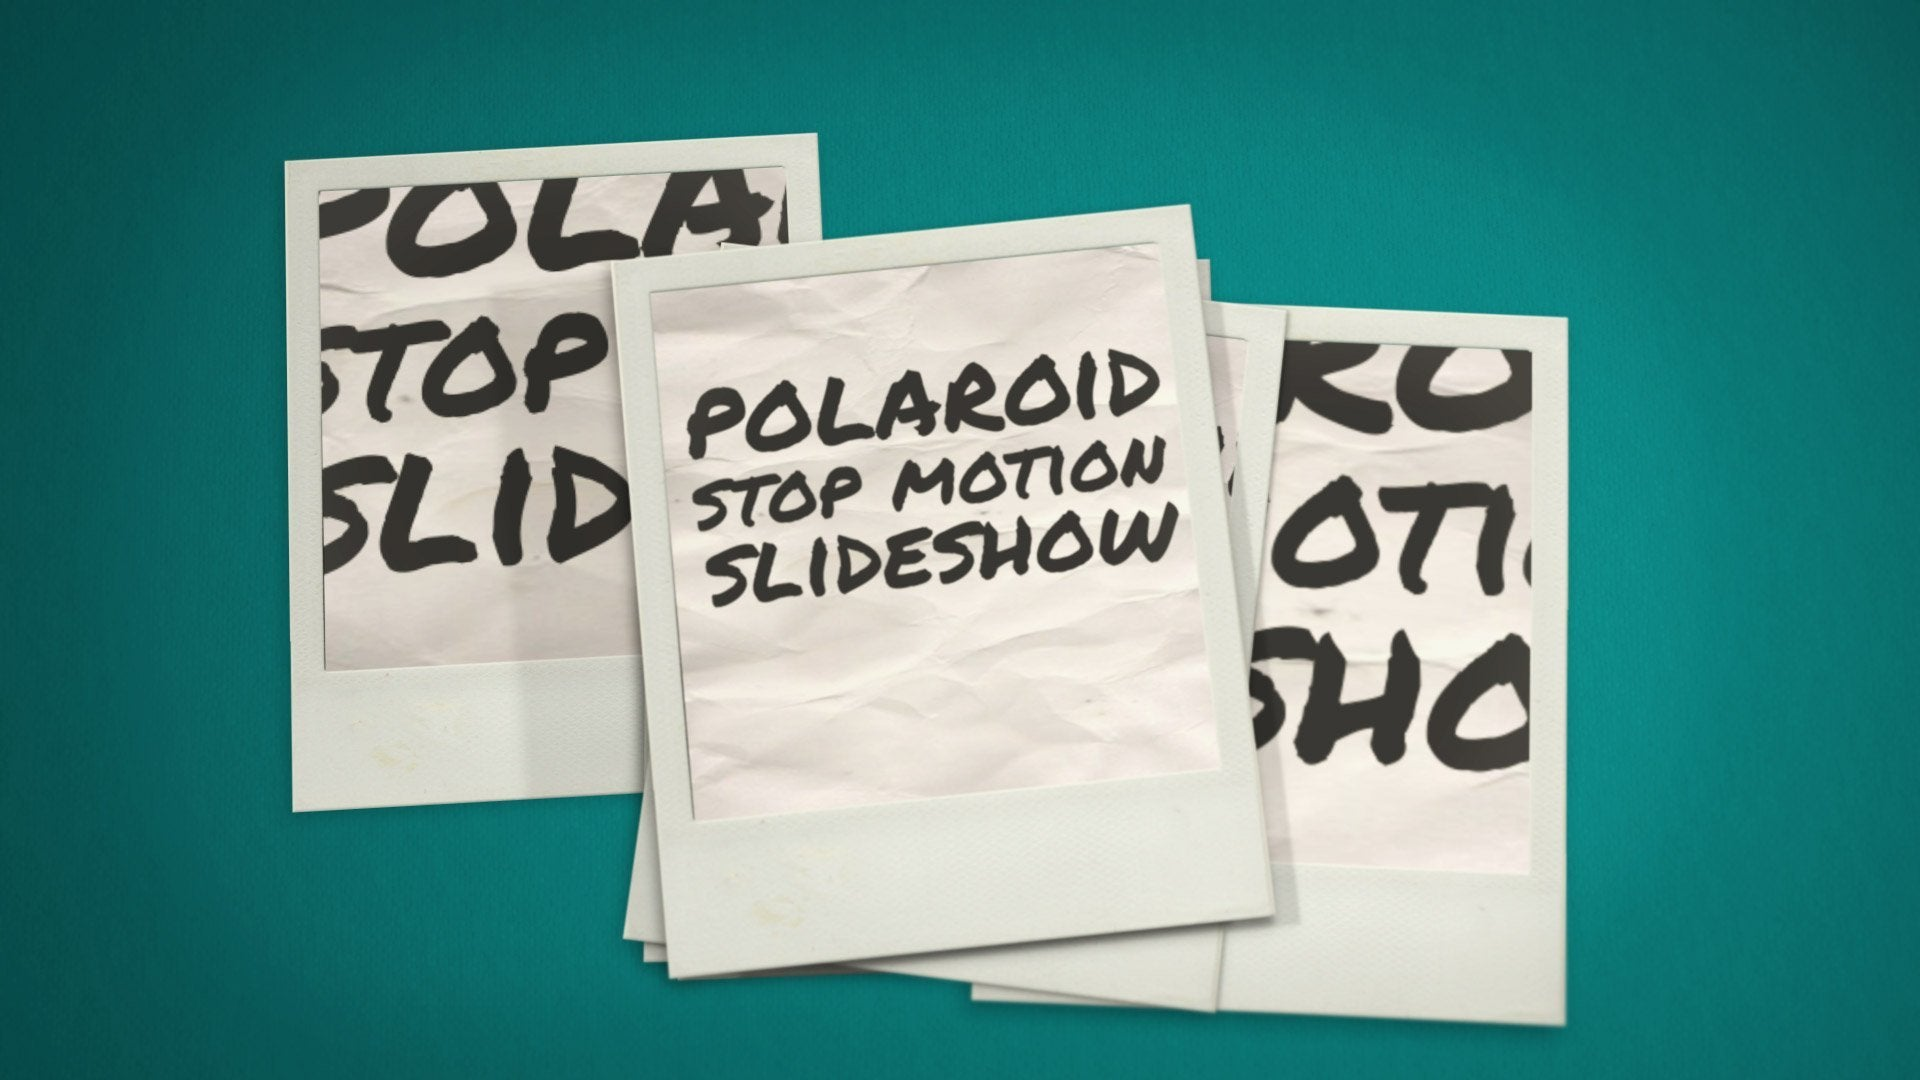 polaroid stop motion after effects template